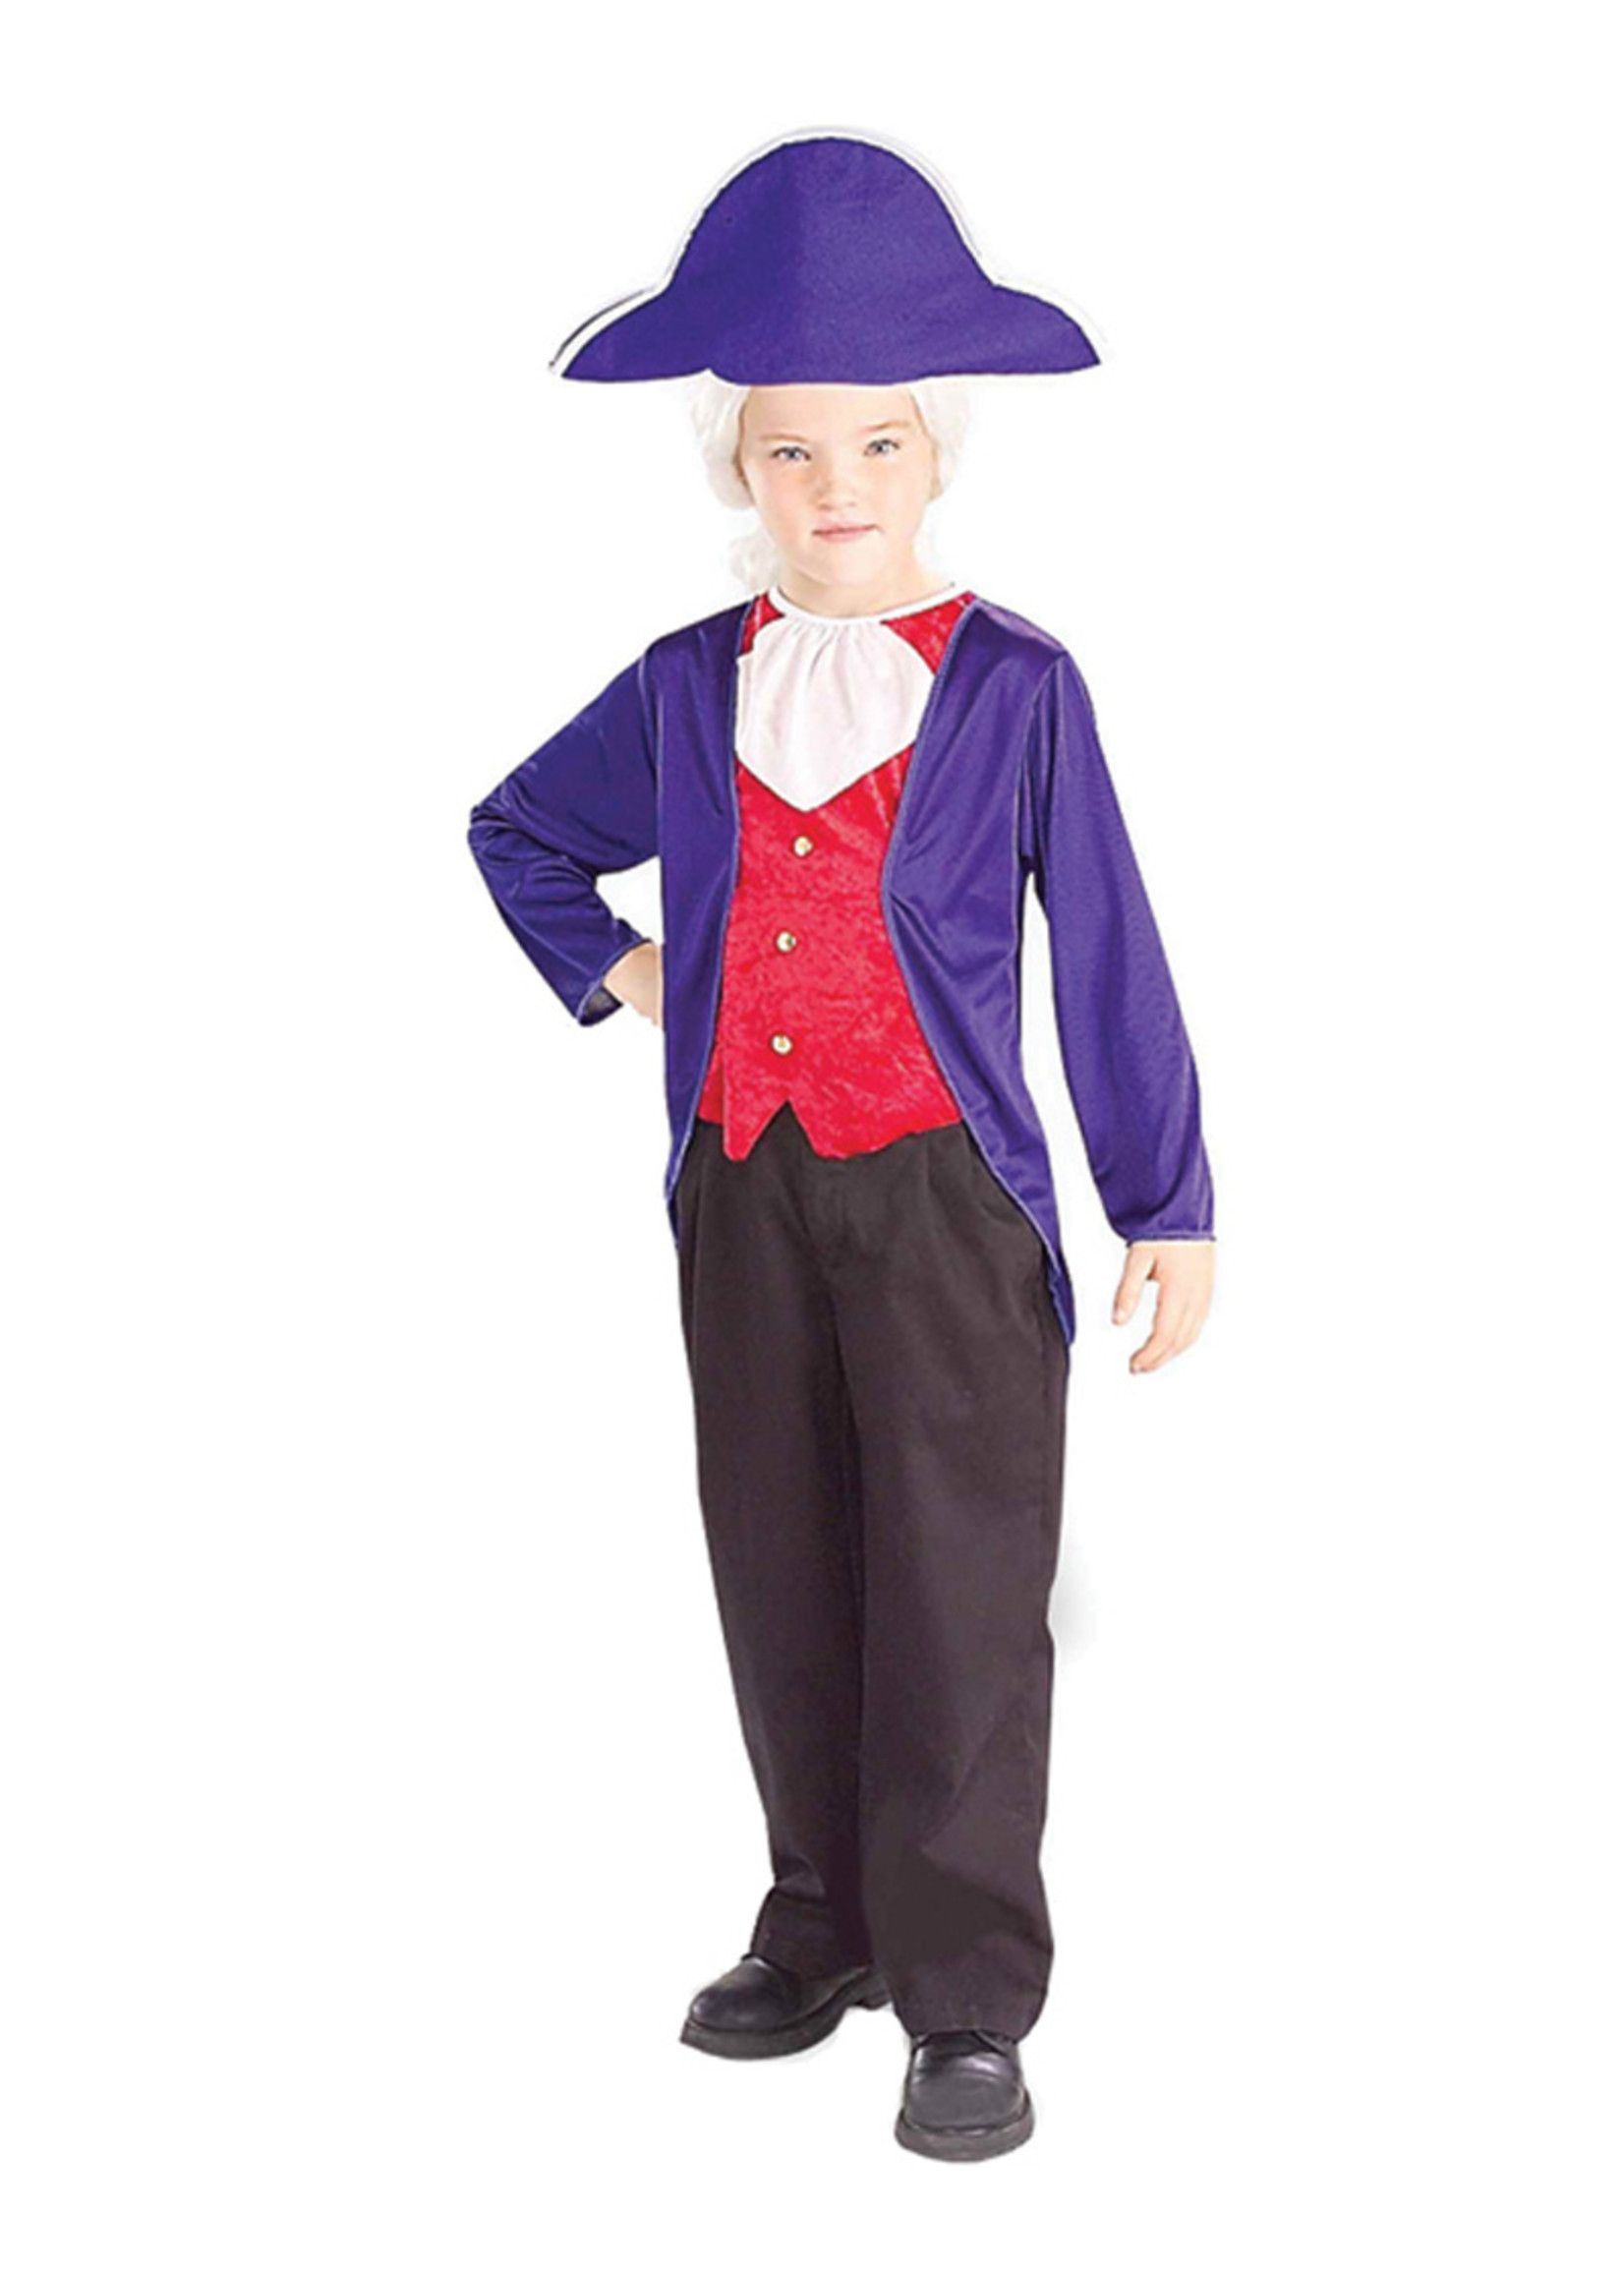 George Washington Costume - Boy's